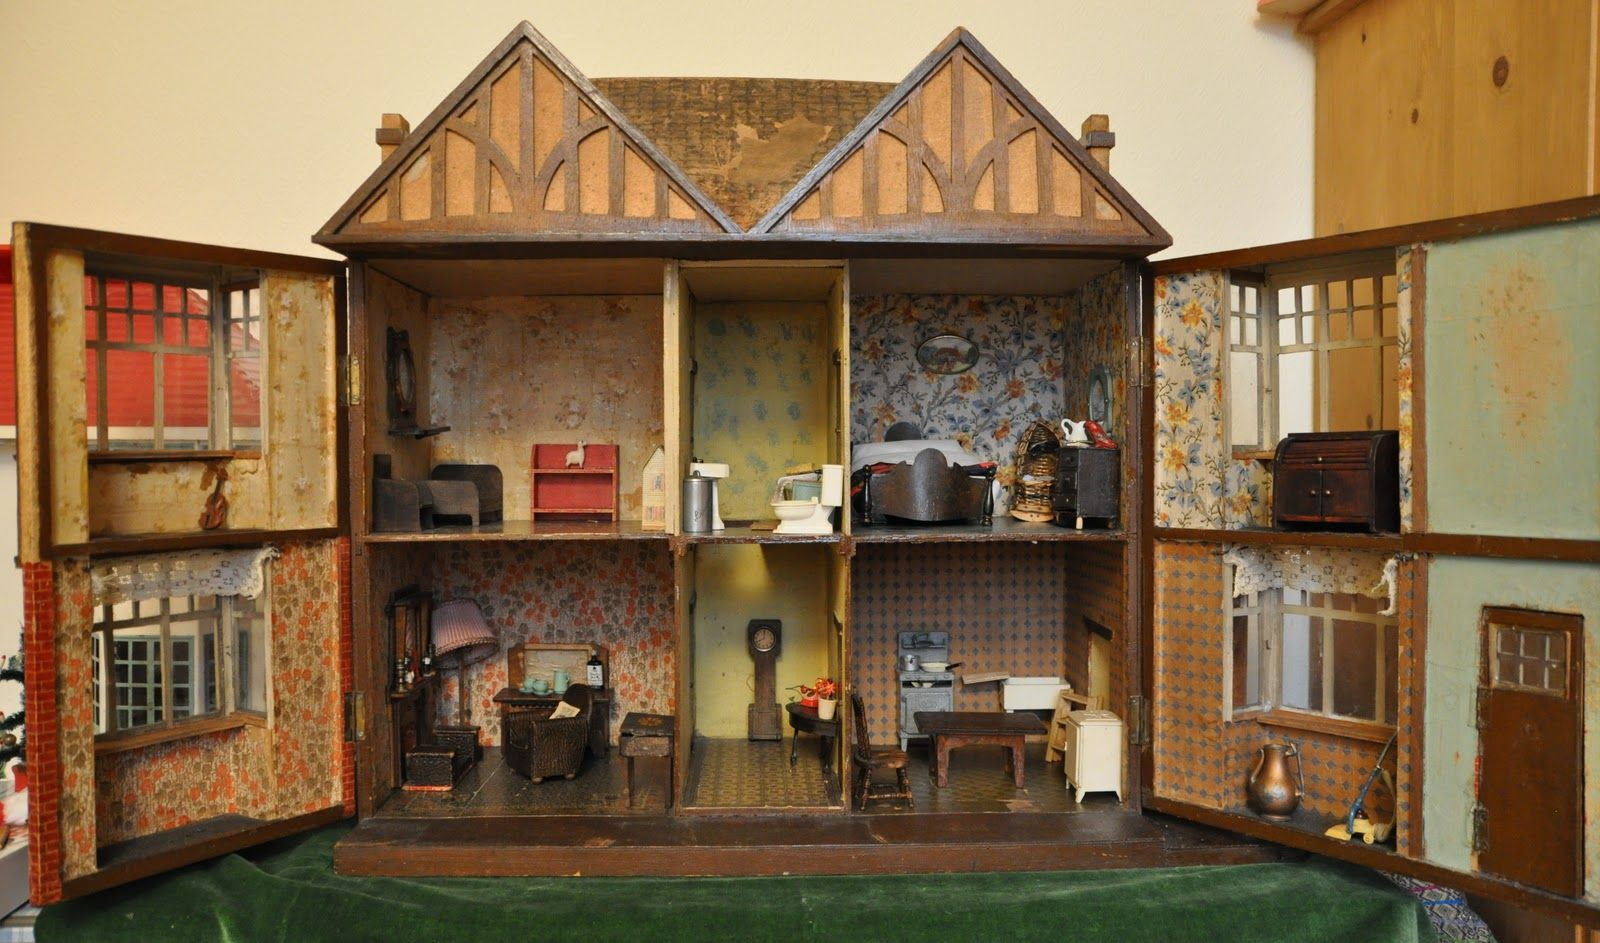 Prime Dollshouse Days The Inside Of The House Babies Pinterest Largest Home Design Picture Inspirations Pitcheantrous